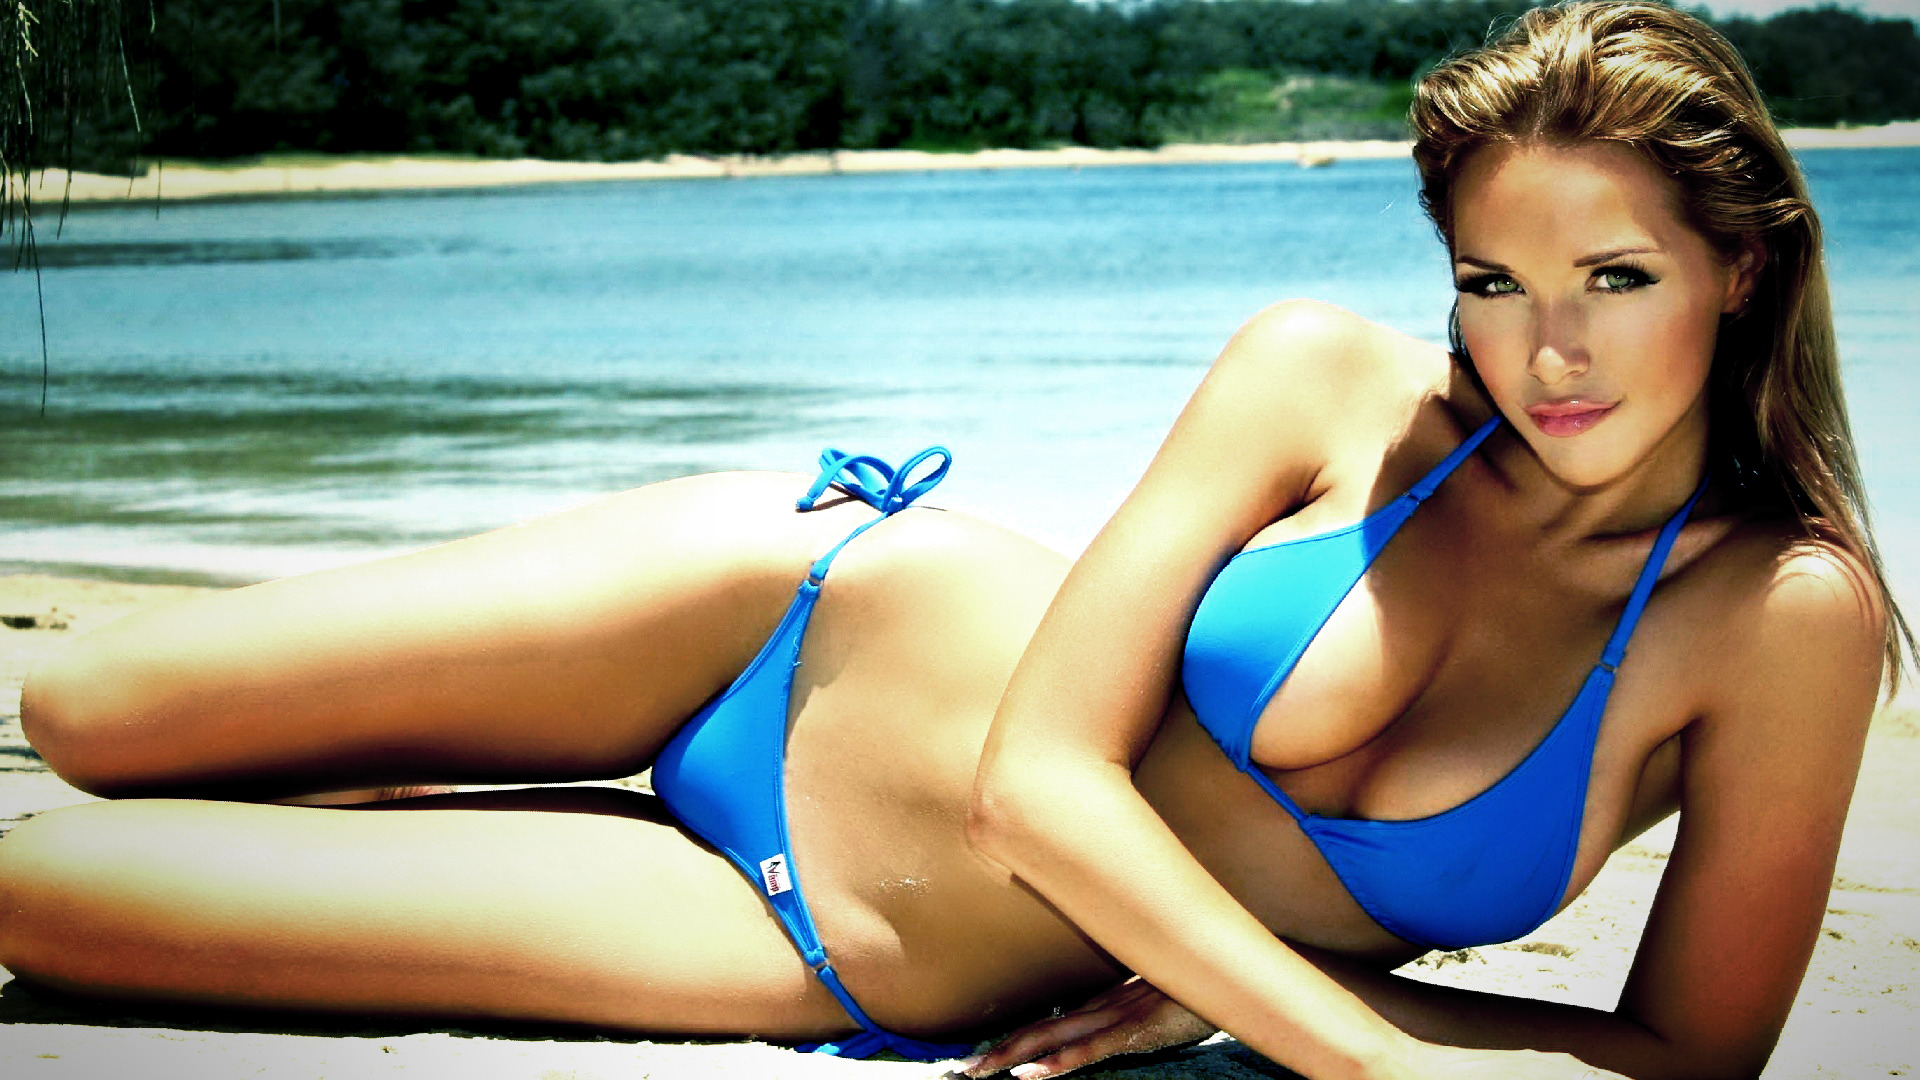 water blue bikini Emily HD Wallpaper